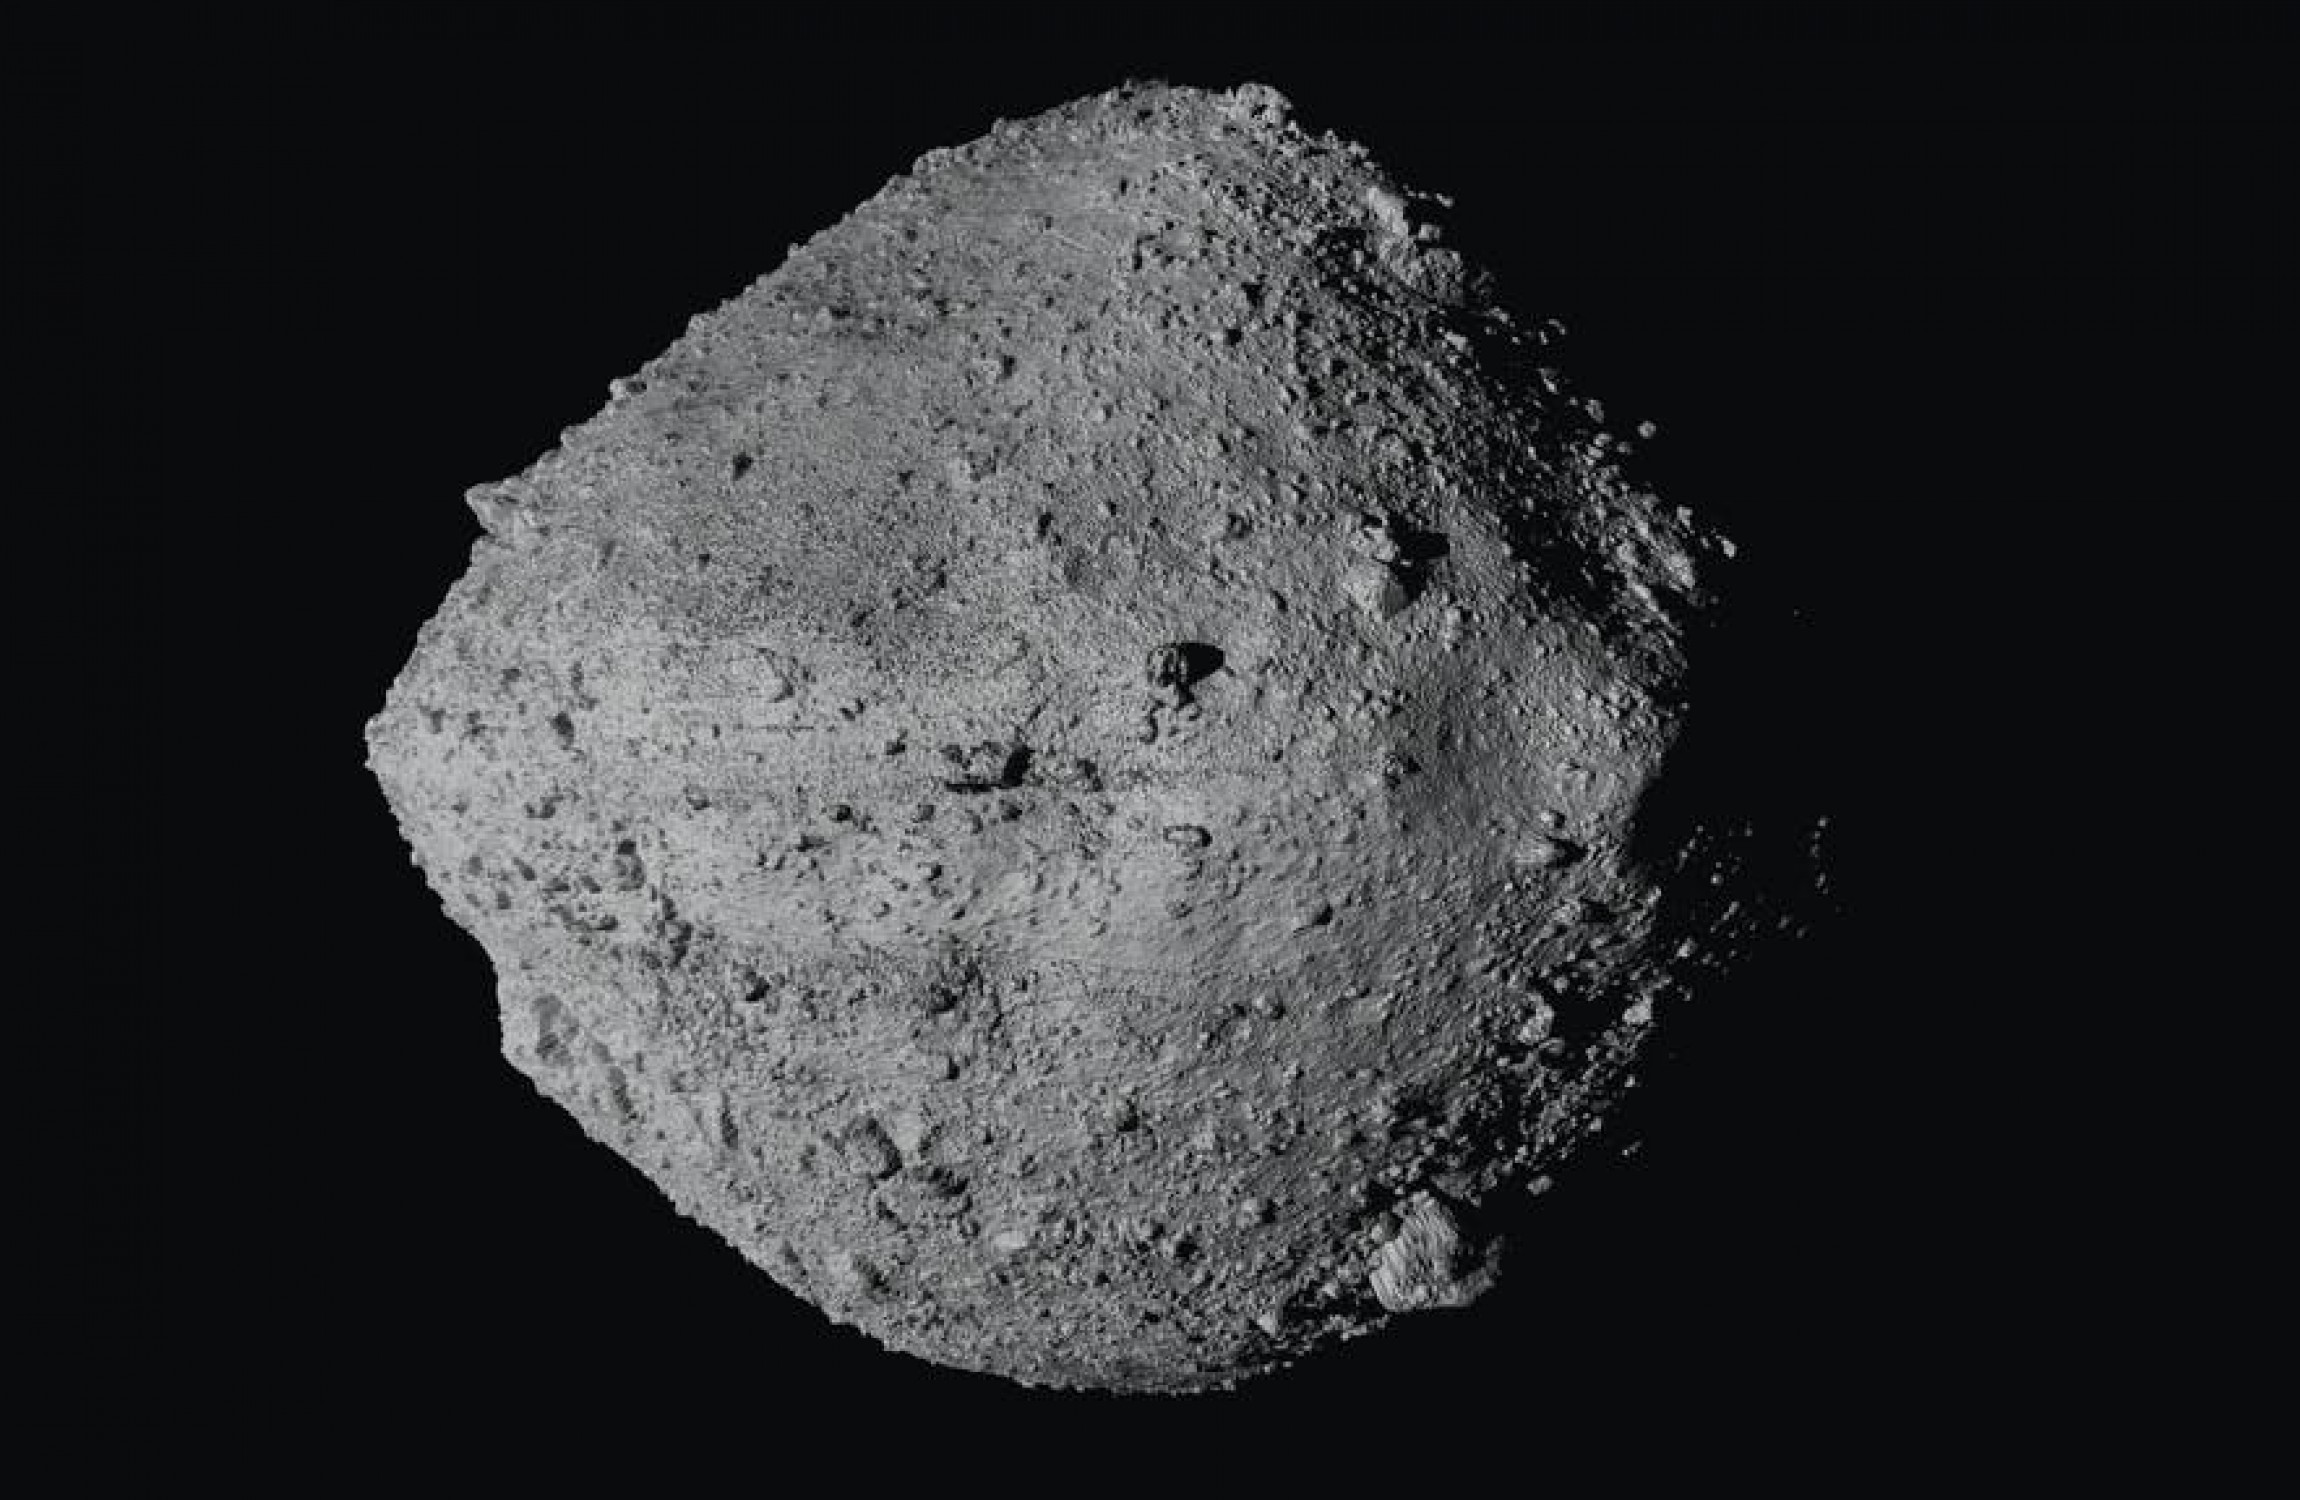 REx Completes Asteroid Touch-And-Go